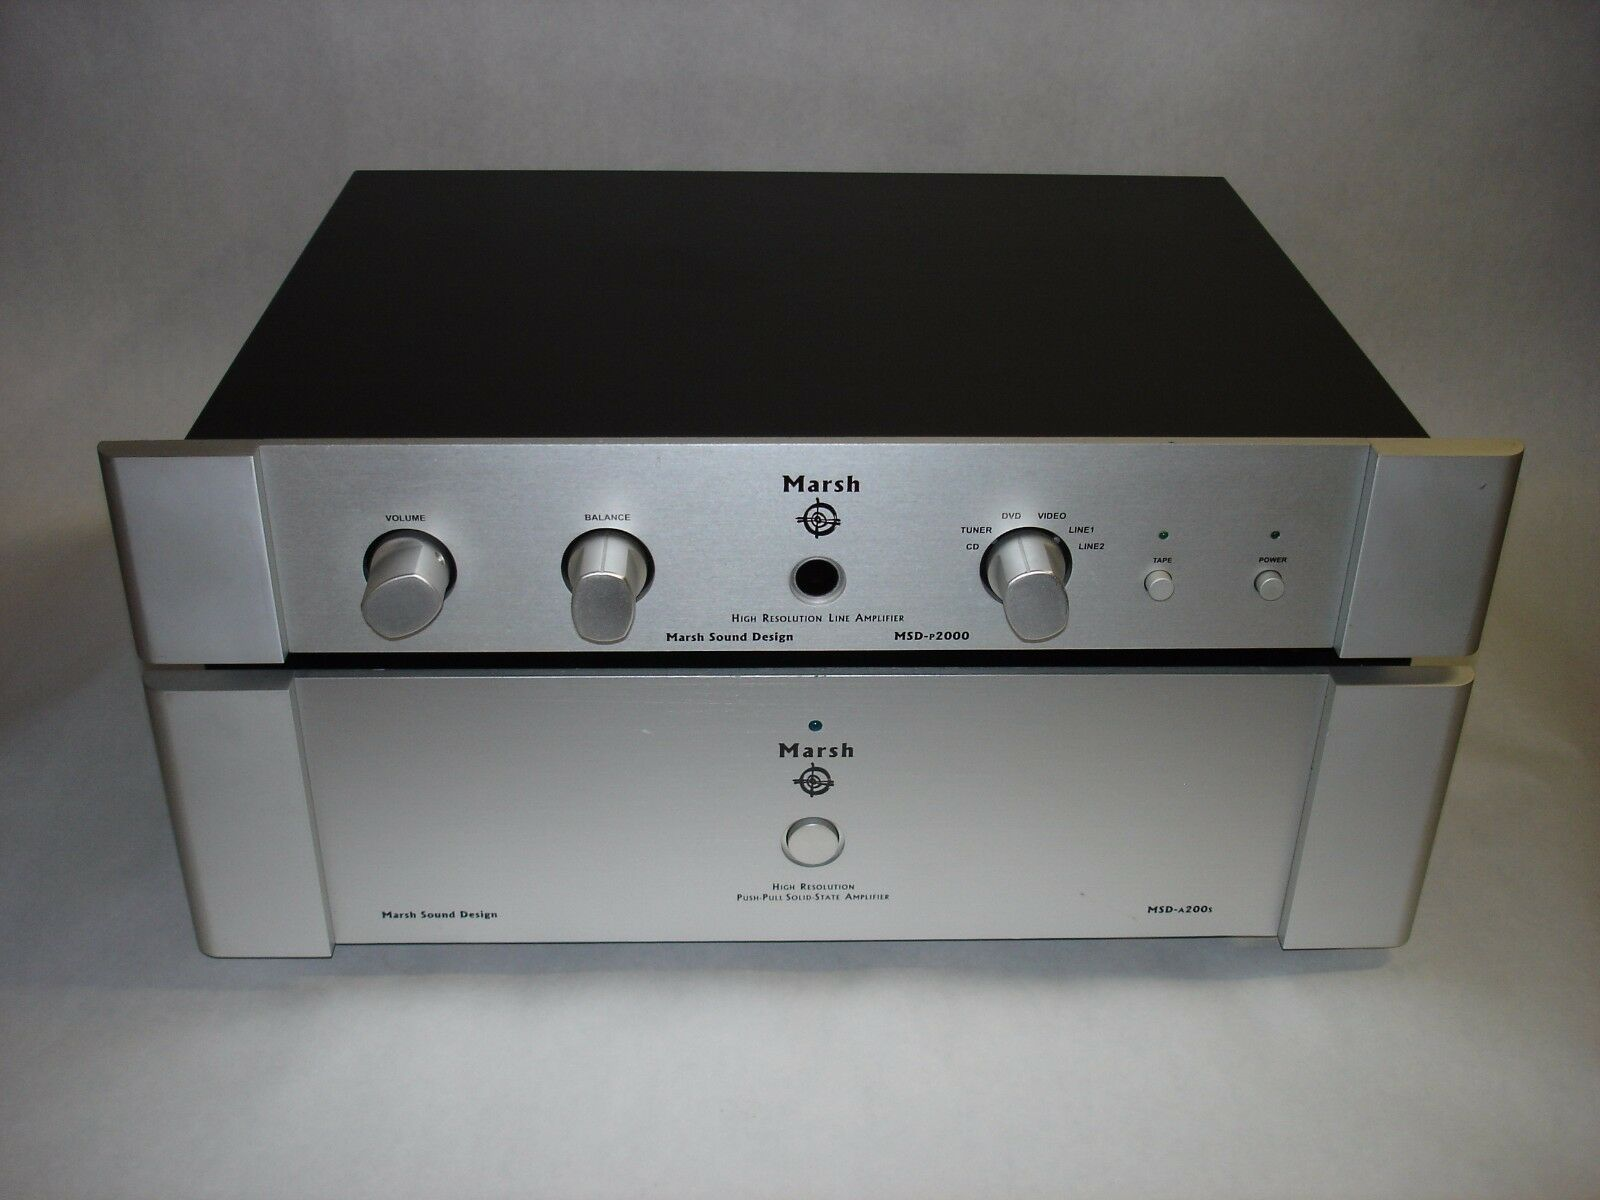 Marsh MSD-P2000 Preamplifier and Marsh A200s Stereo Power Amplifier Both Work!